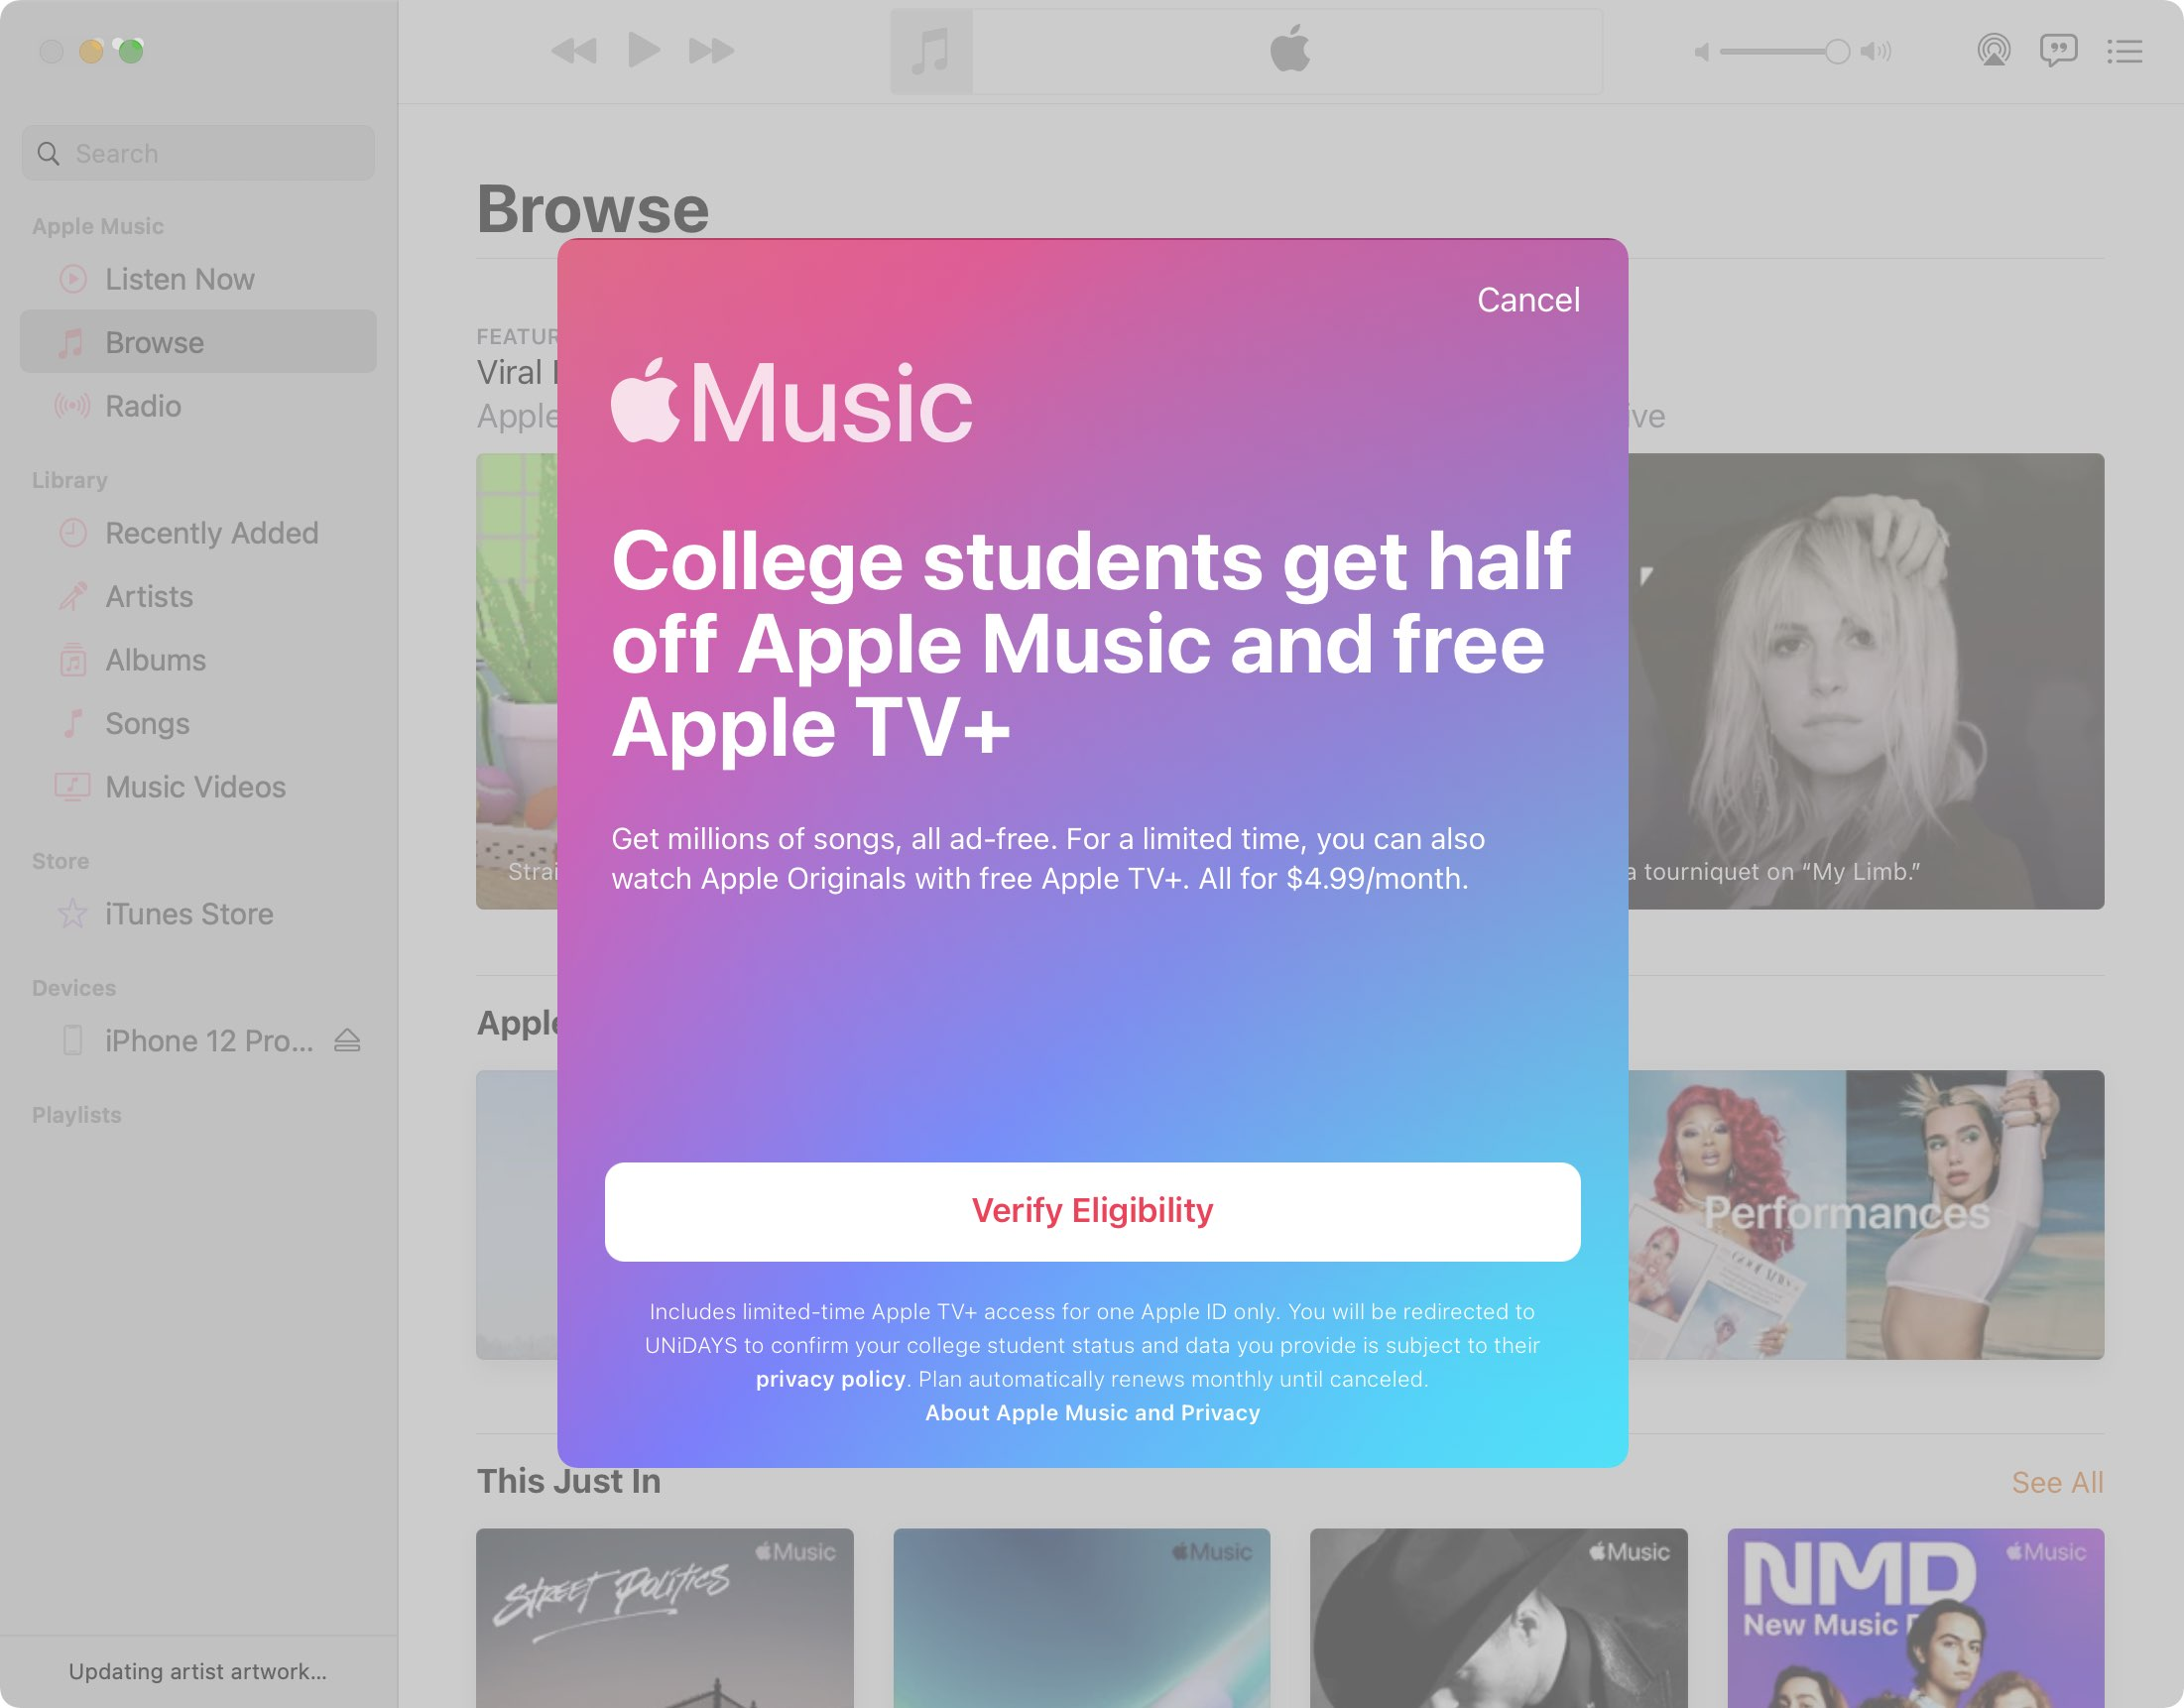 A screenshot of the Music app for the Mac showing a splash screen advertising Apple Music's time-limited promotion for students